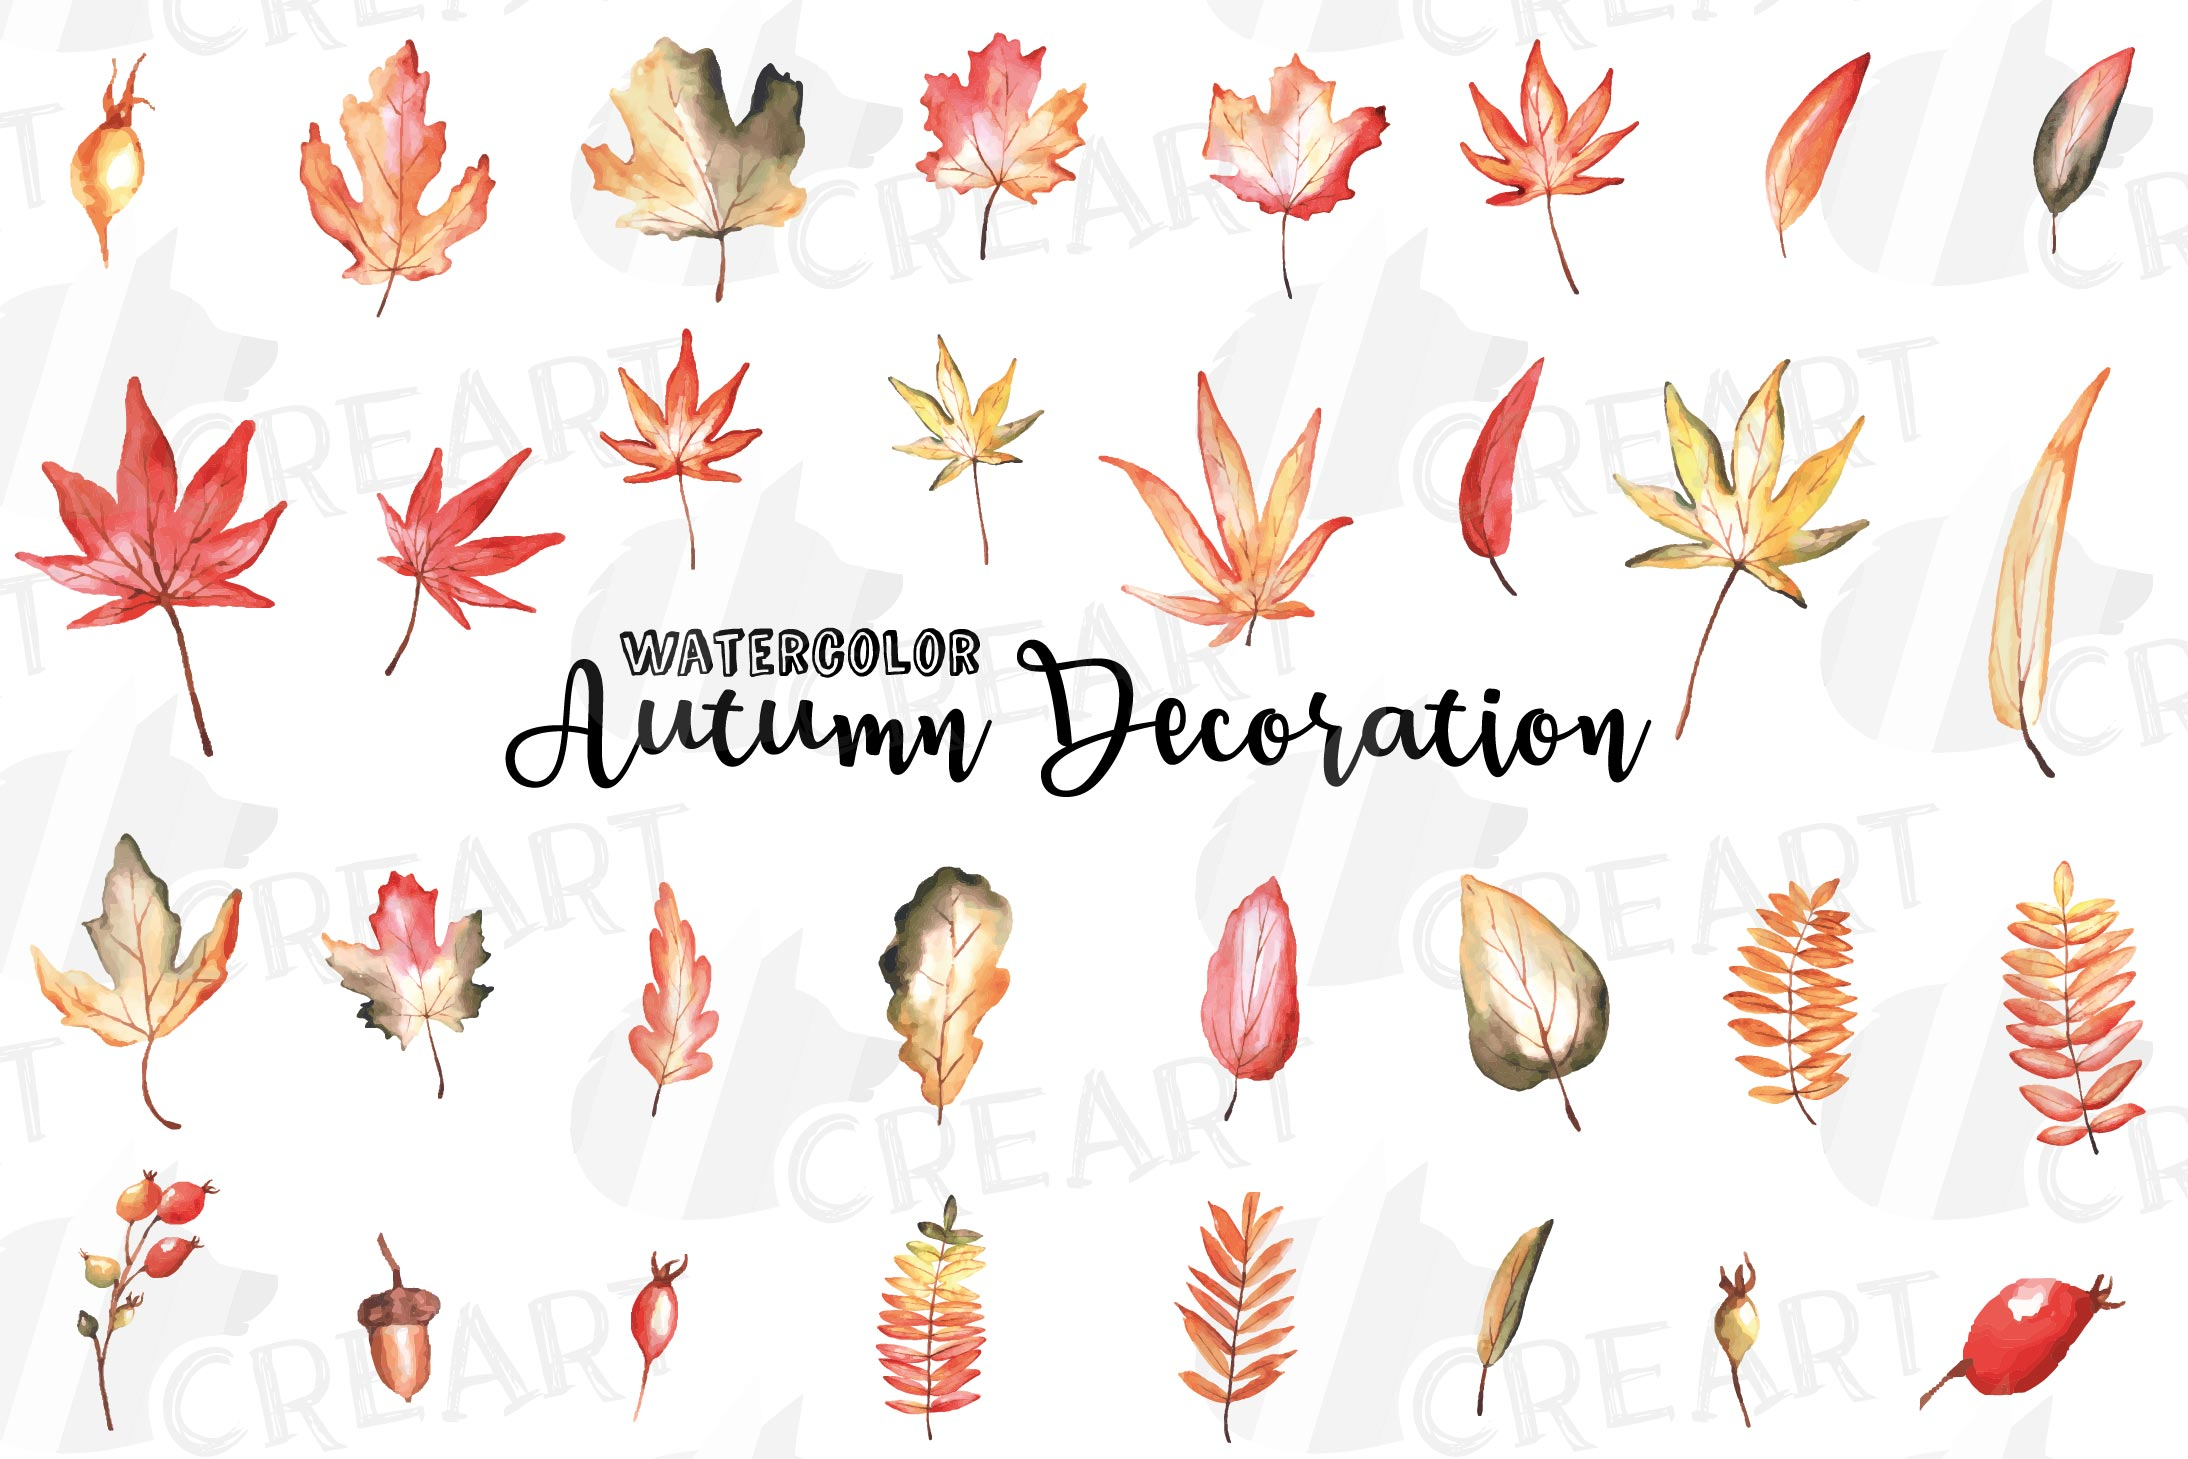 Printable autumn leaves watercolor decoration clip art pack..